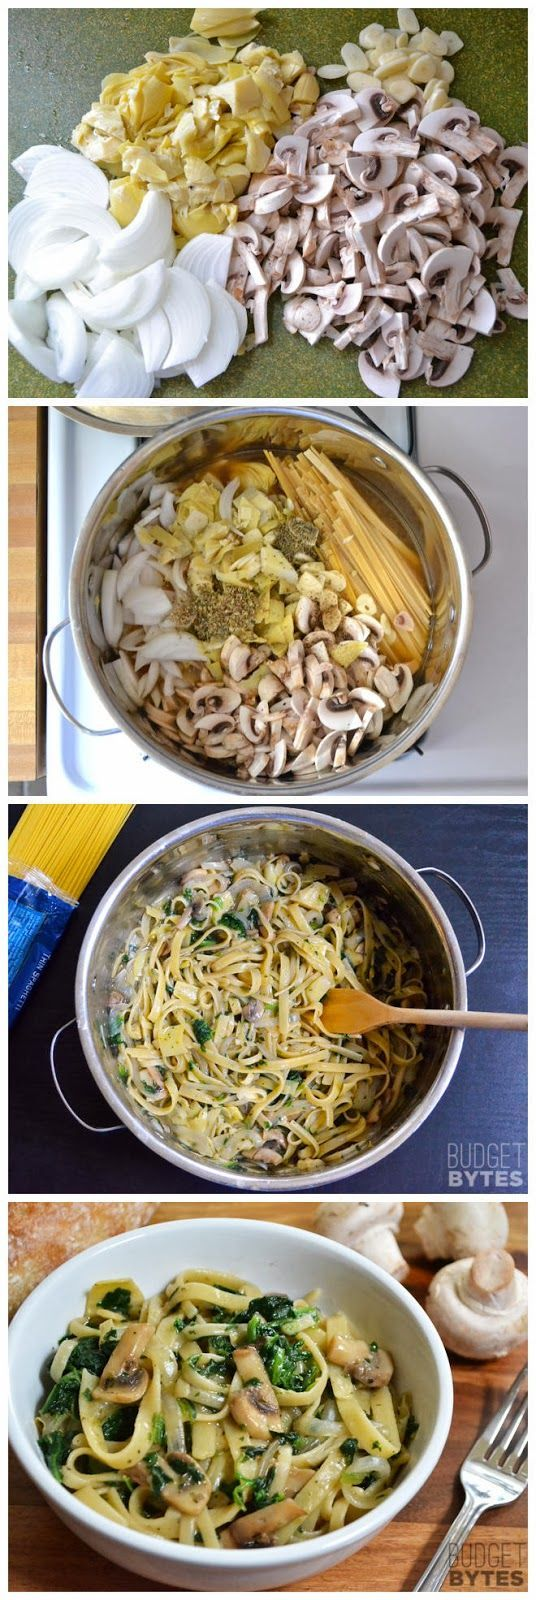 Spinach  Artichoke Wonderpot (another one pot wonder recipe)    Ingredients      8 oz. mushrooms  1 (14 oz.) can artichoke hearts